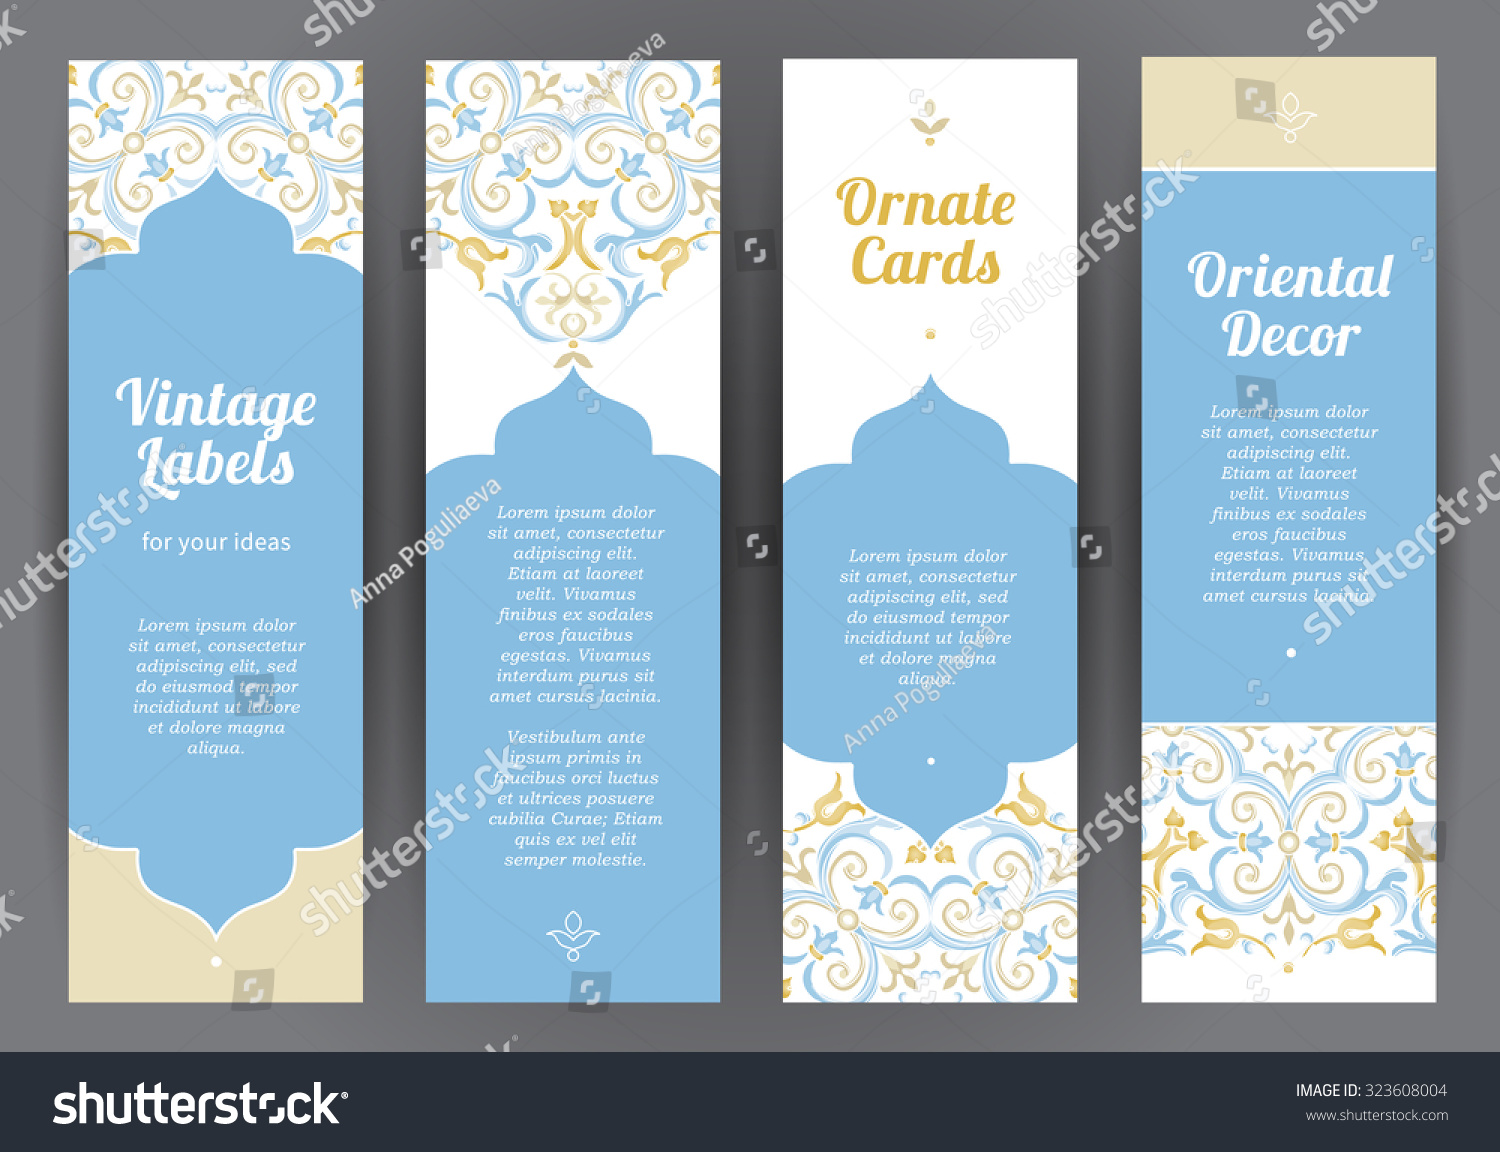 Royalty free ornate vintage cards pastel decor in 323608004 stock template frame for greeting card invitation leaflet poster sale decor business card sticker badge vector border with place for text stock photo kristyandbryce Image collections